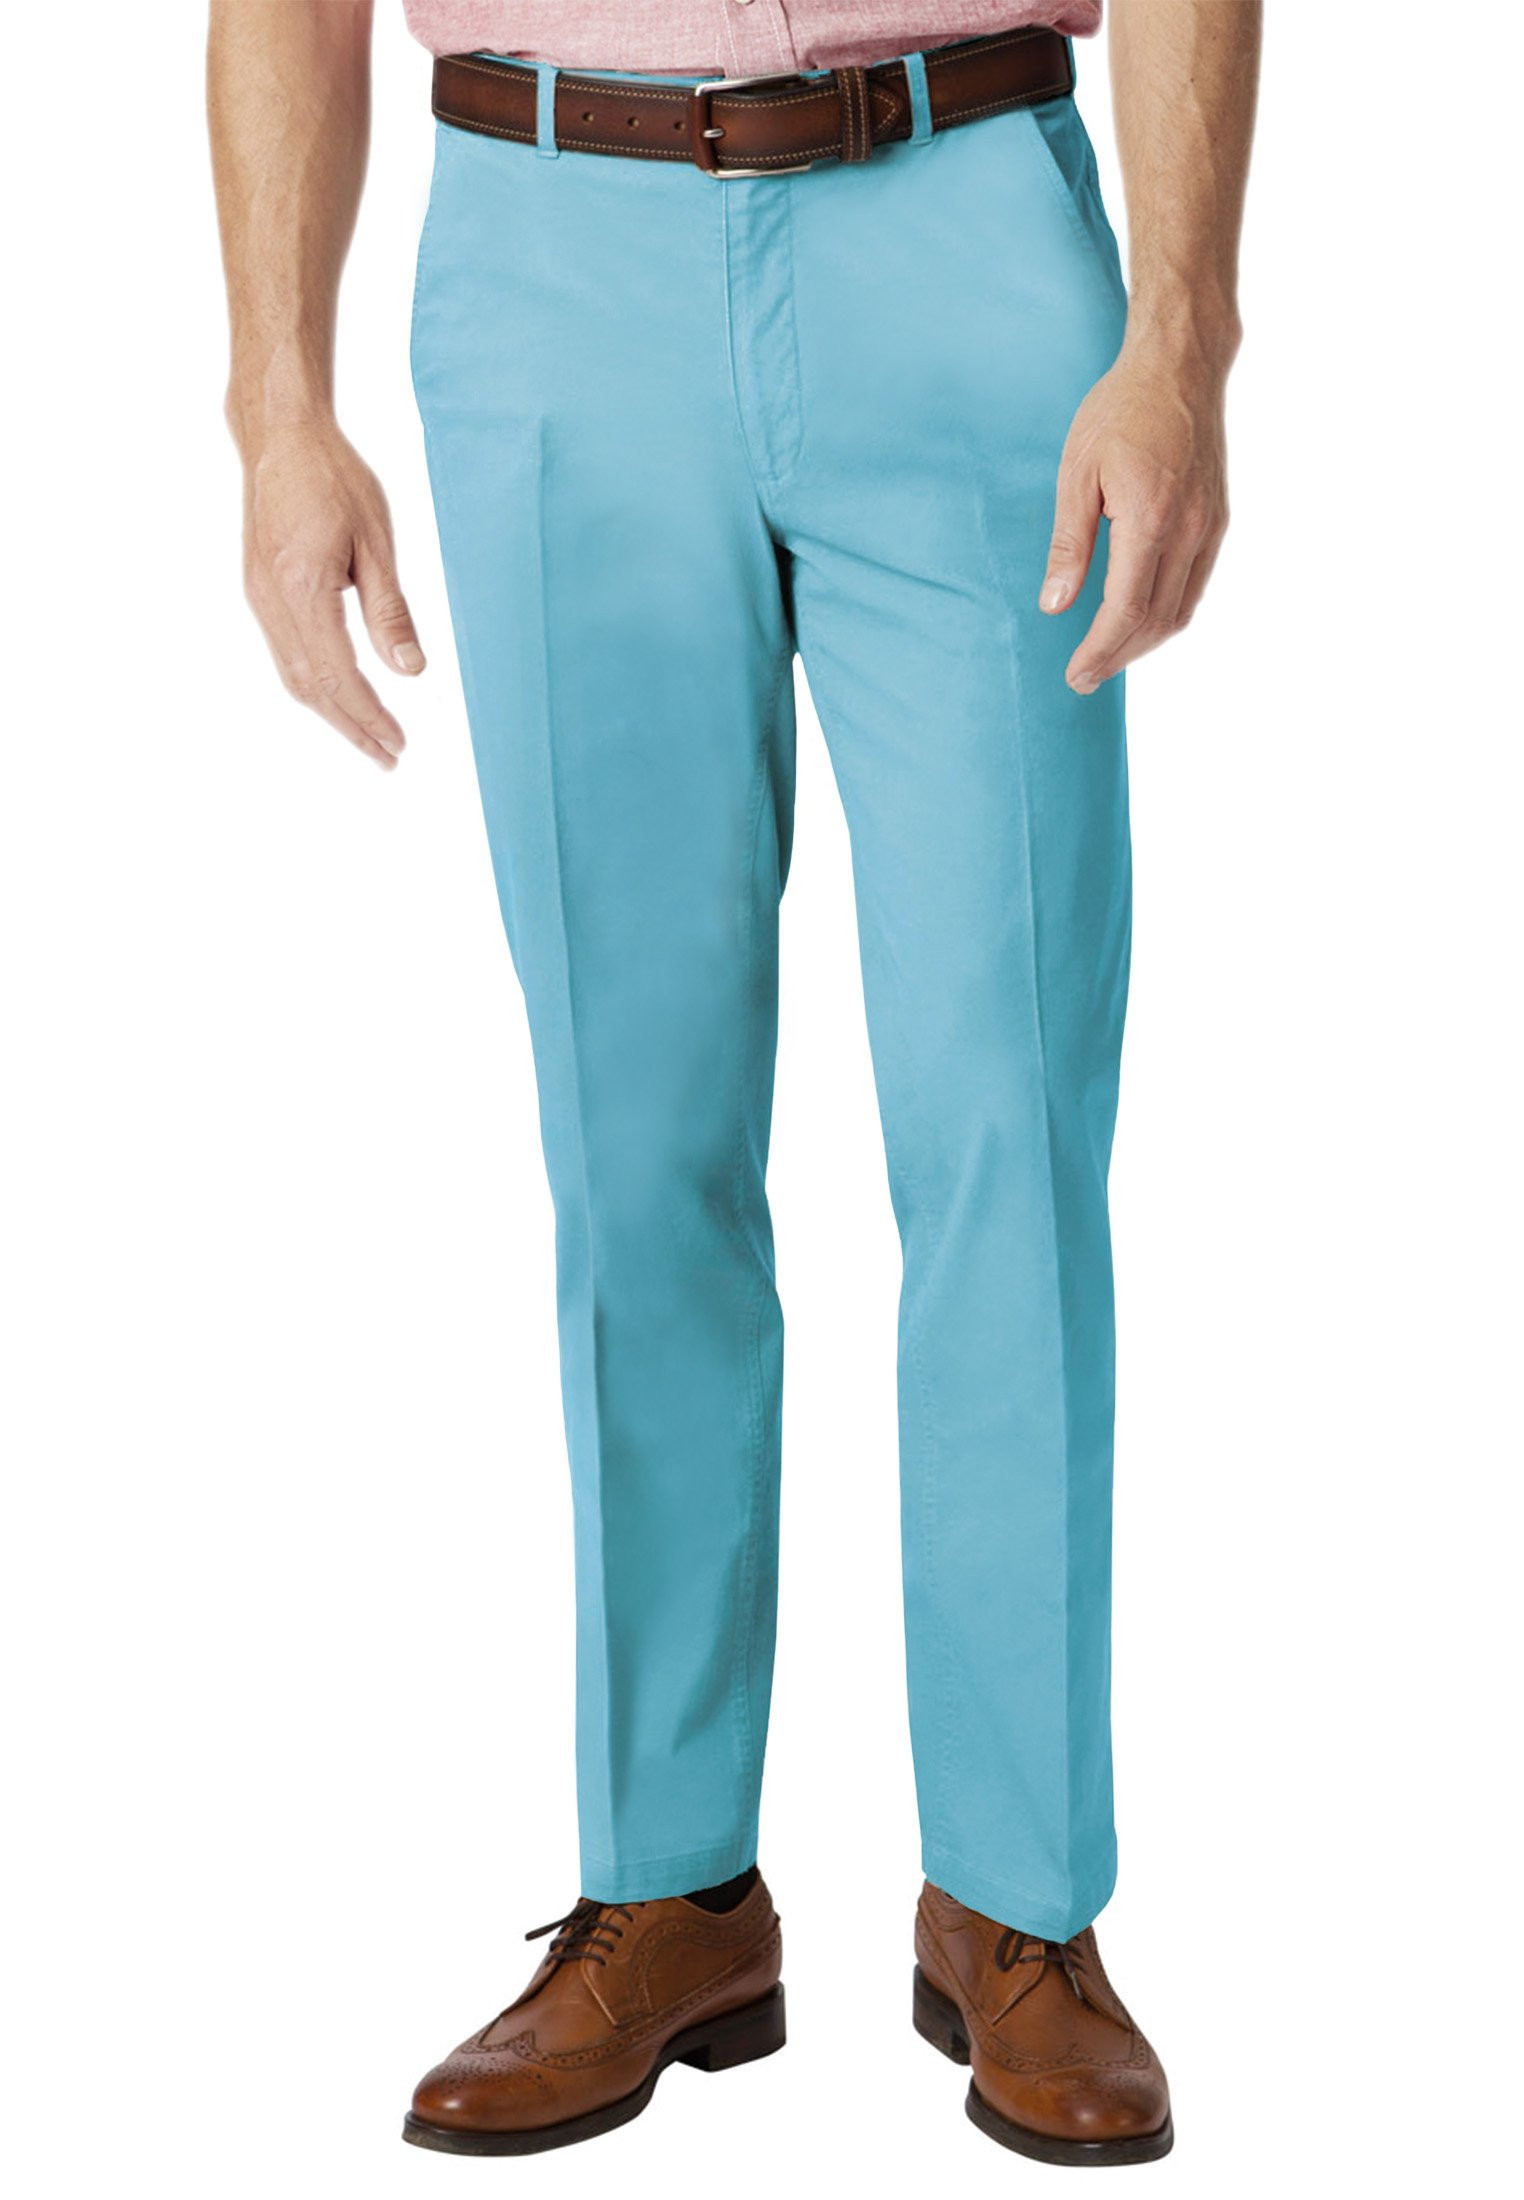 Ribblesdale Aqua Tailored Fit Cotton Stretch Summer Trouser